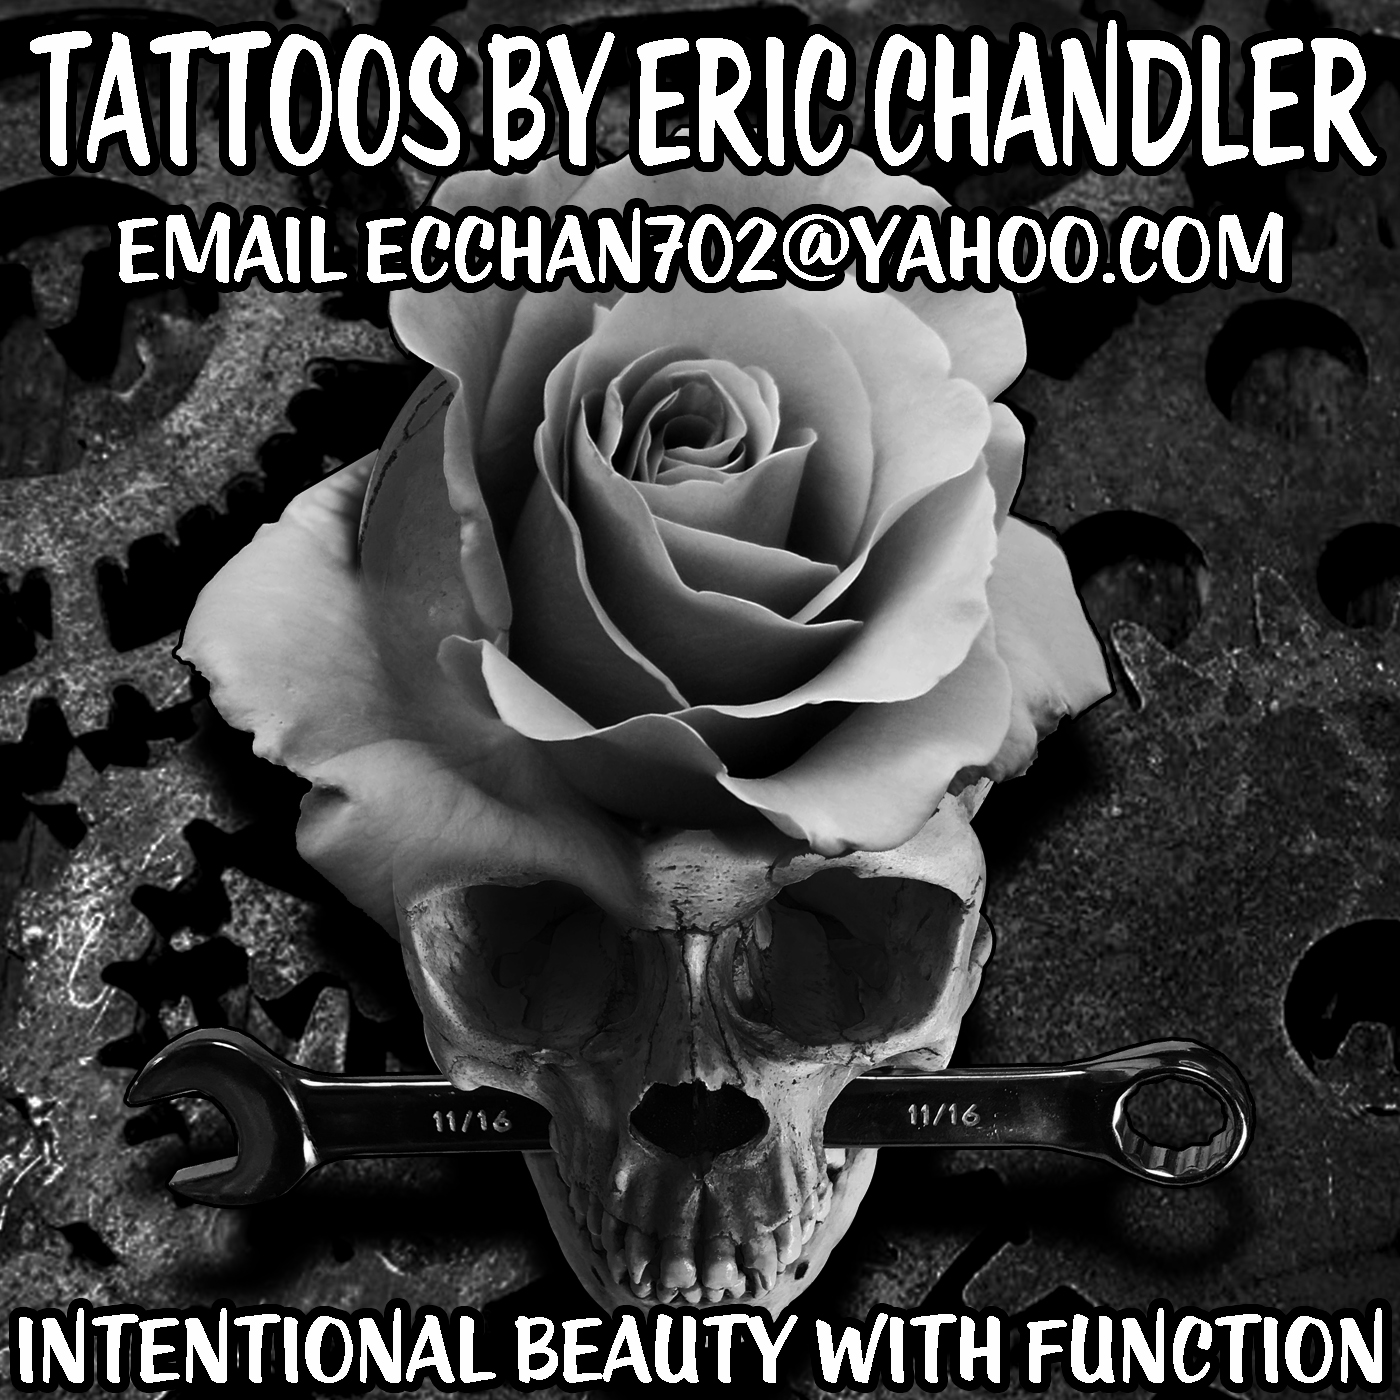 Tattoos by Eric Chandler